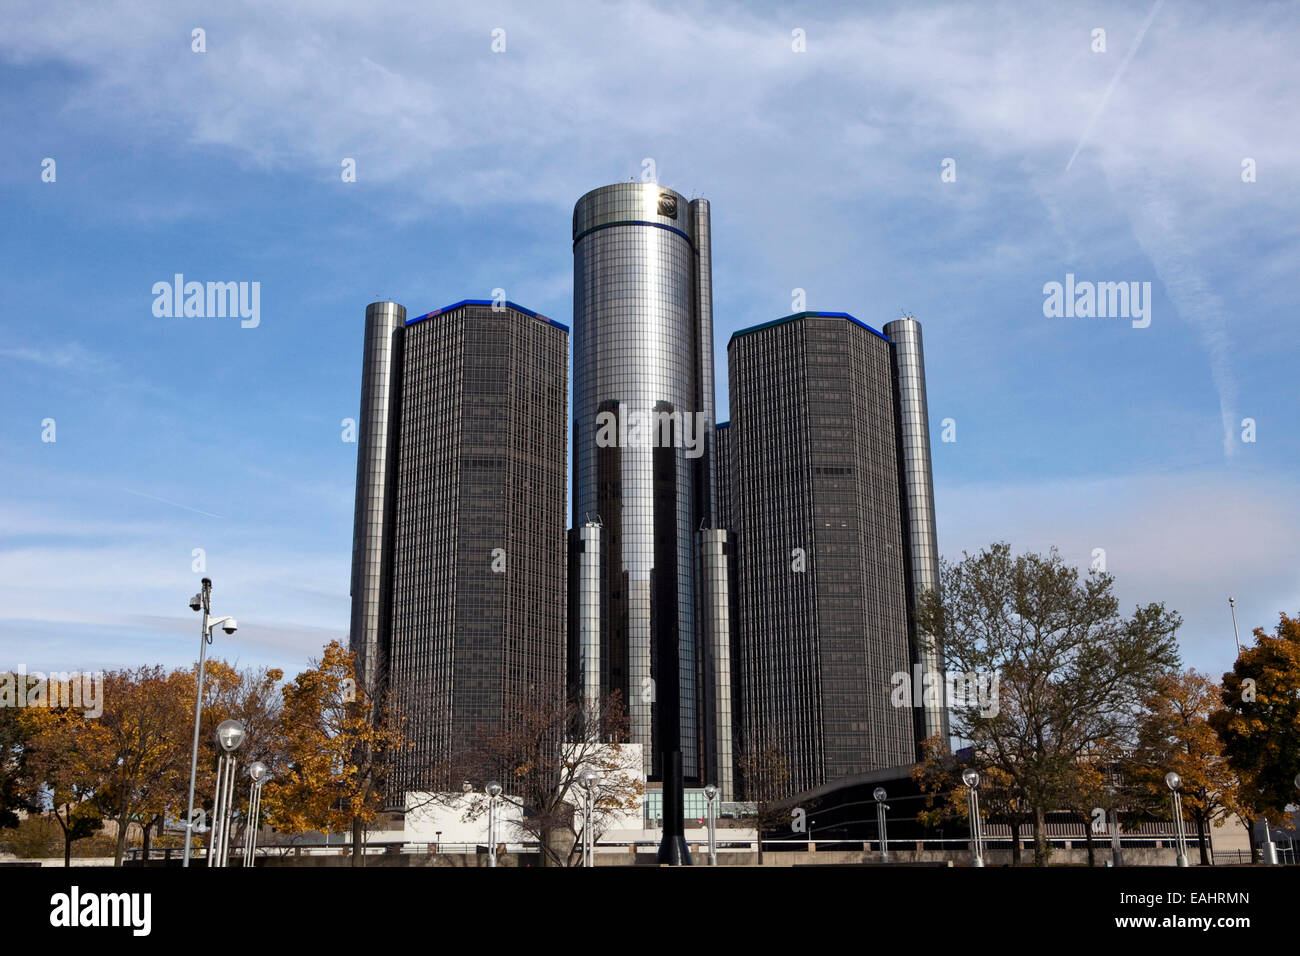 A view of the General Motors headquarters in downtown Detroit - Stock Image